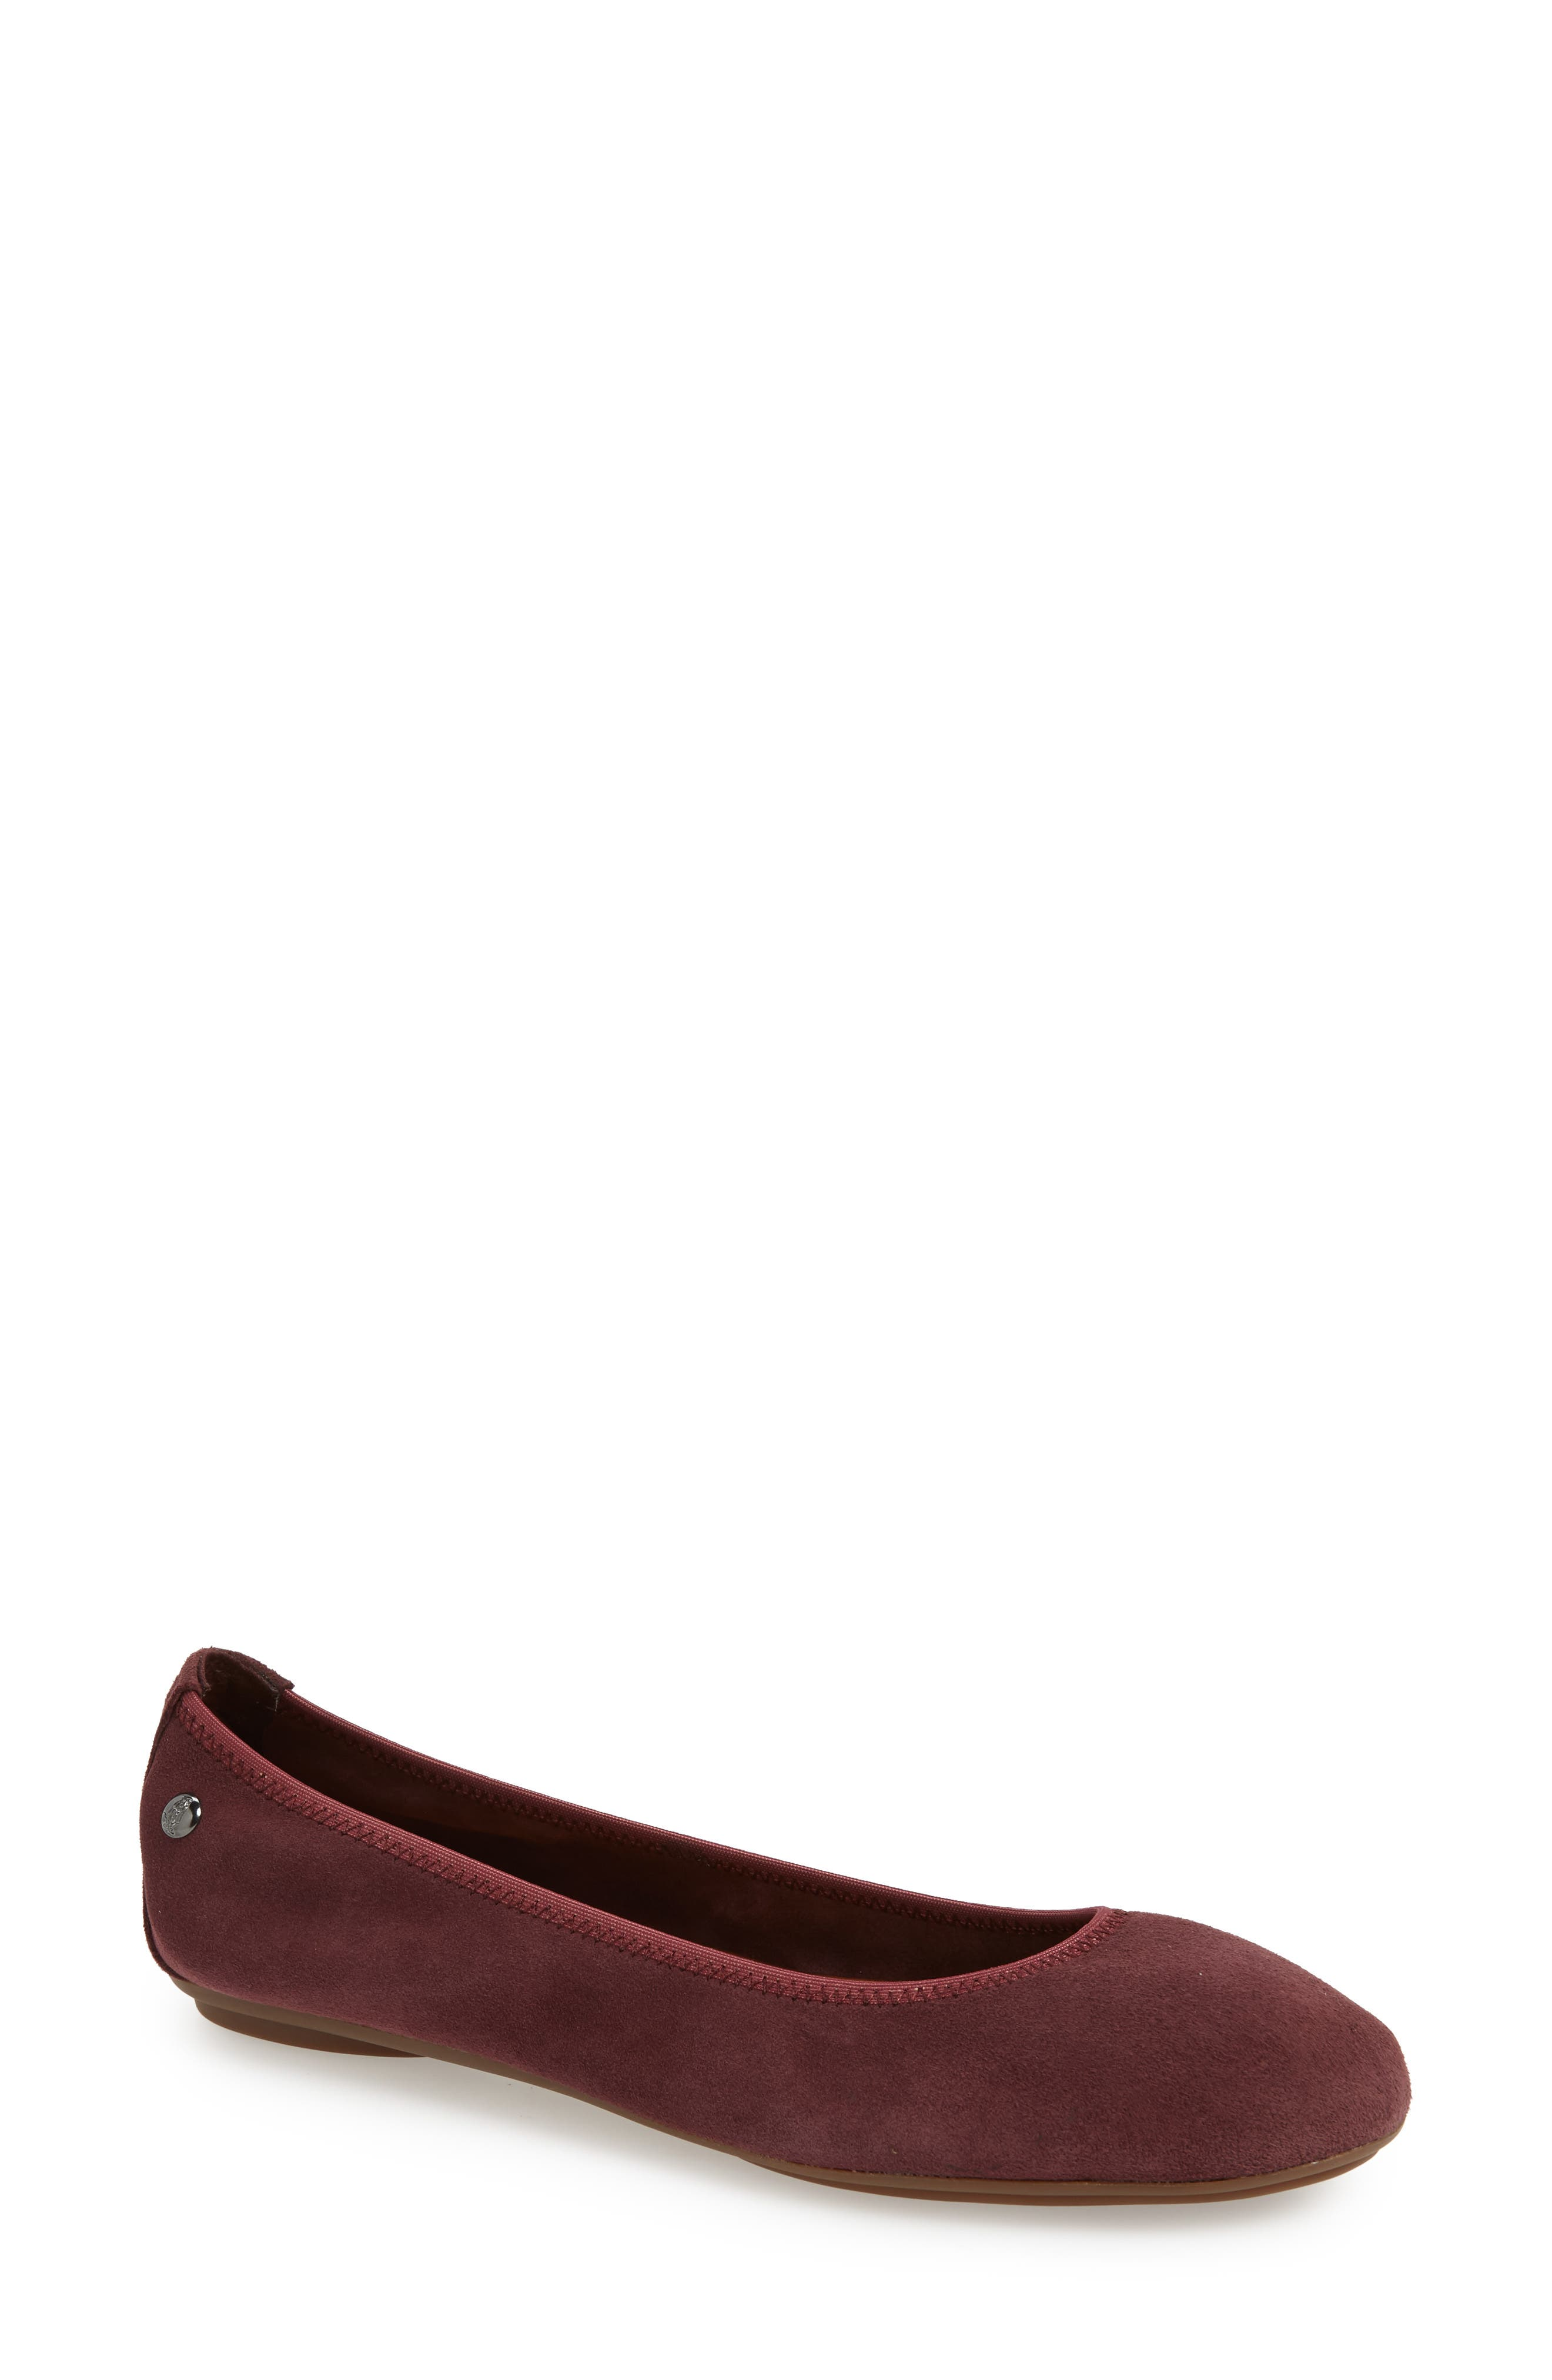 'Chaste' Ballet Flat,                         Main,                         color, DARK WINE SUEDE